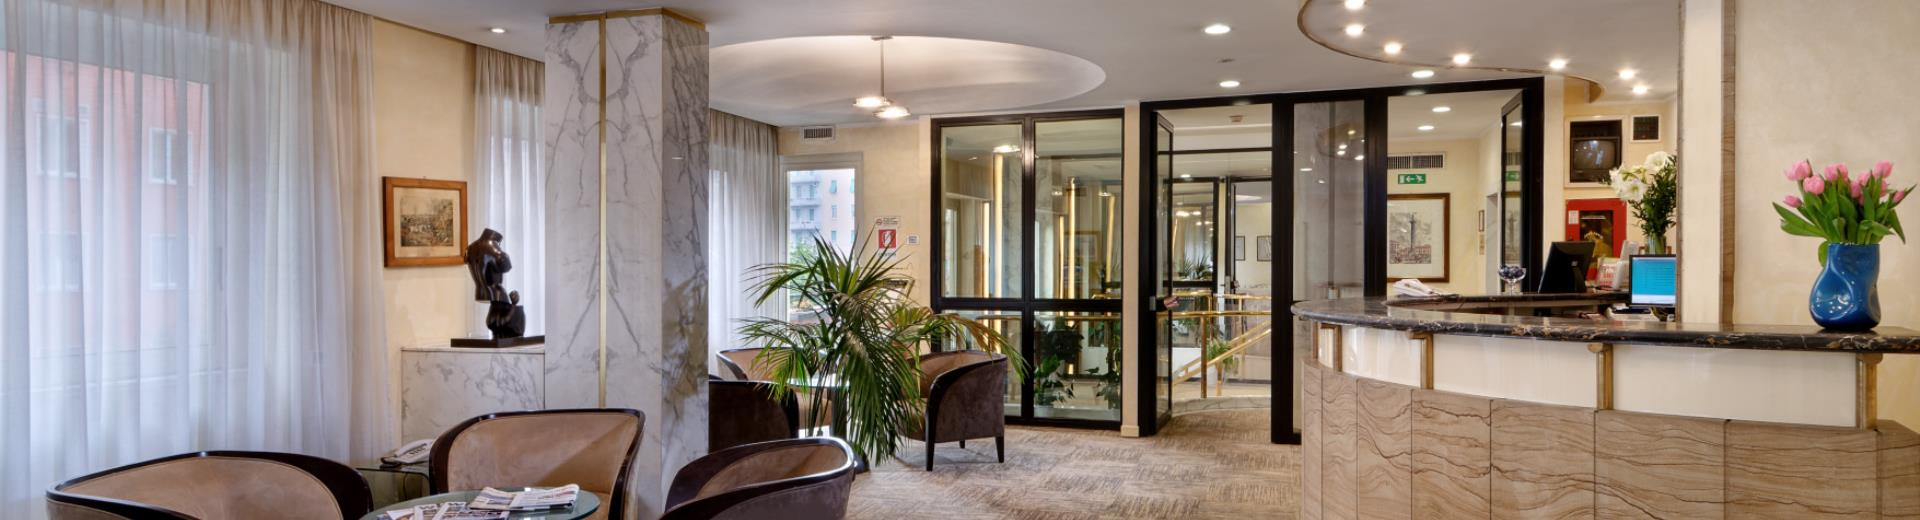 Best Western Piccadilly Roma